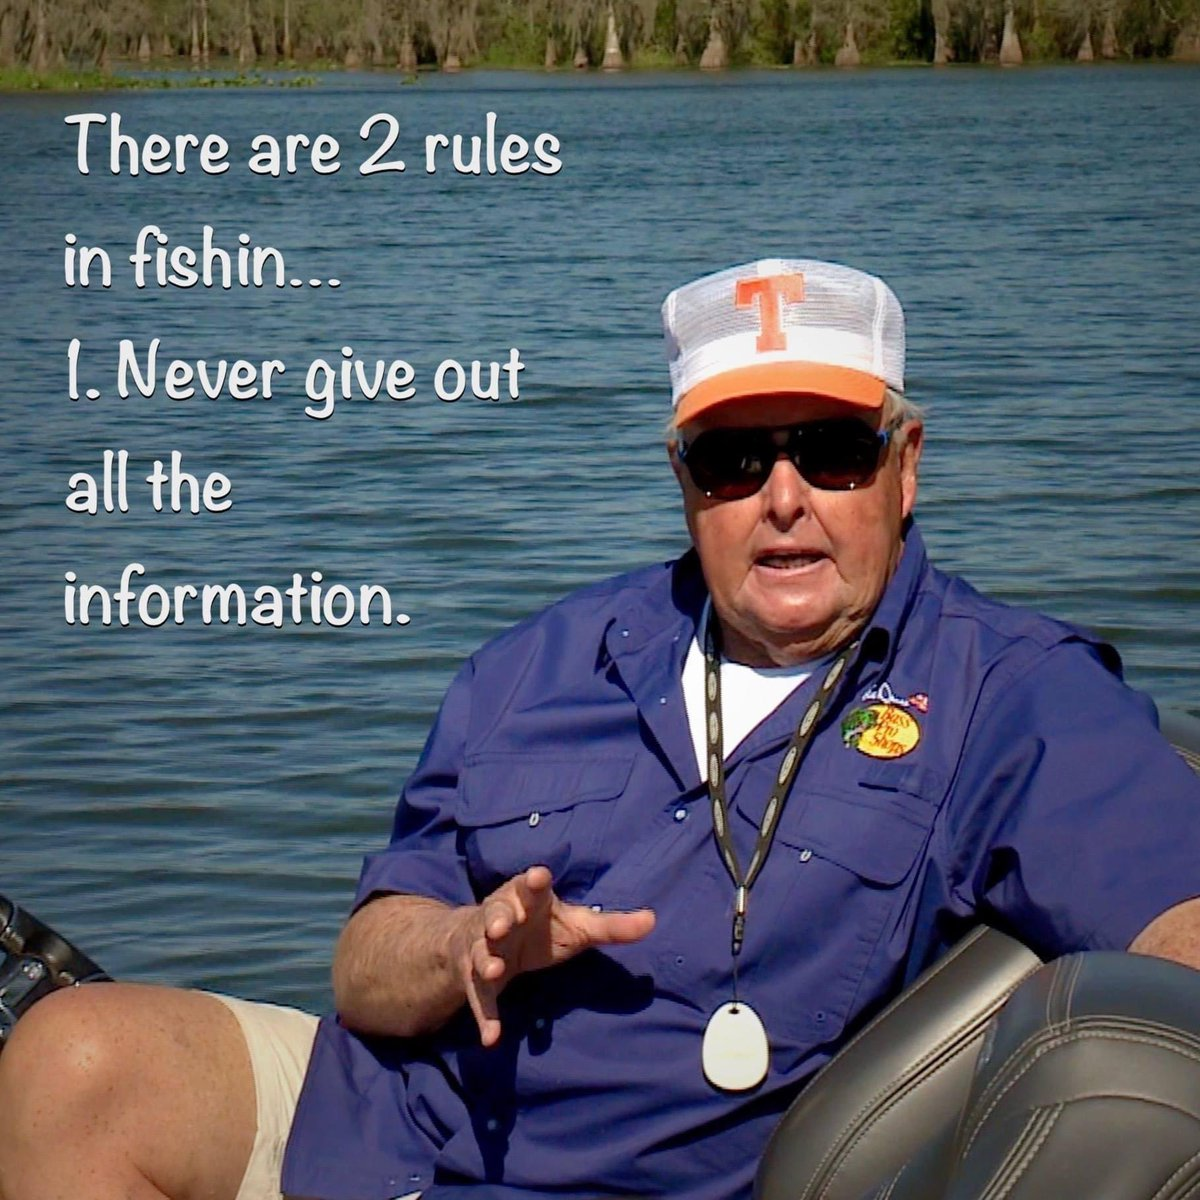 Just remember... 🤣🎣 #rules #fishing #sundayvibes